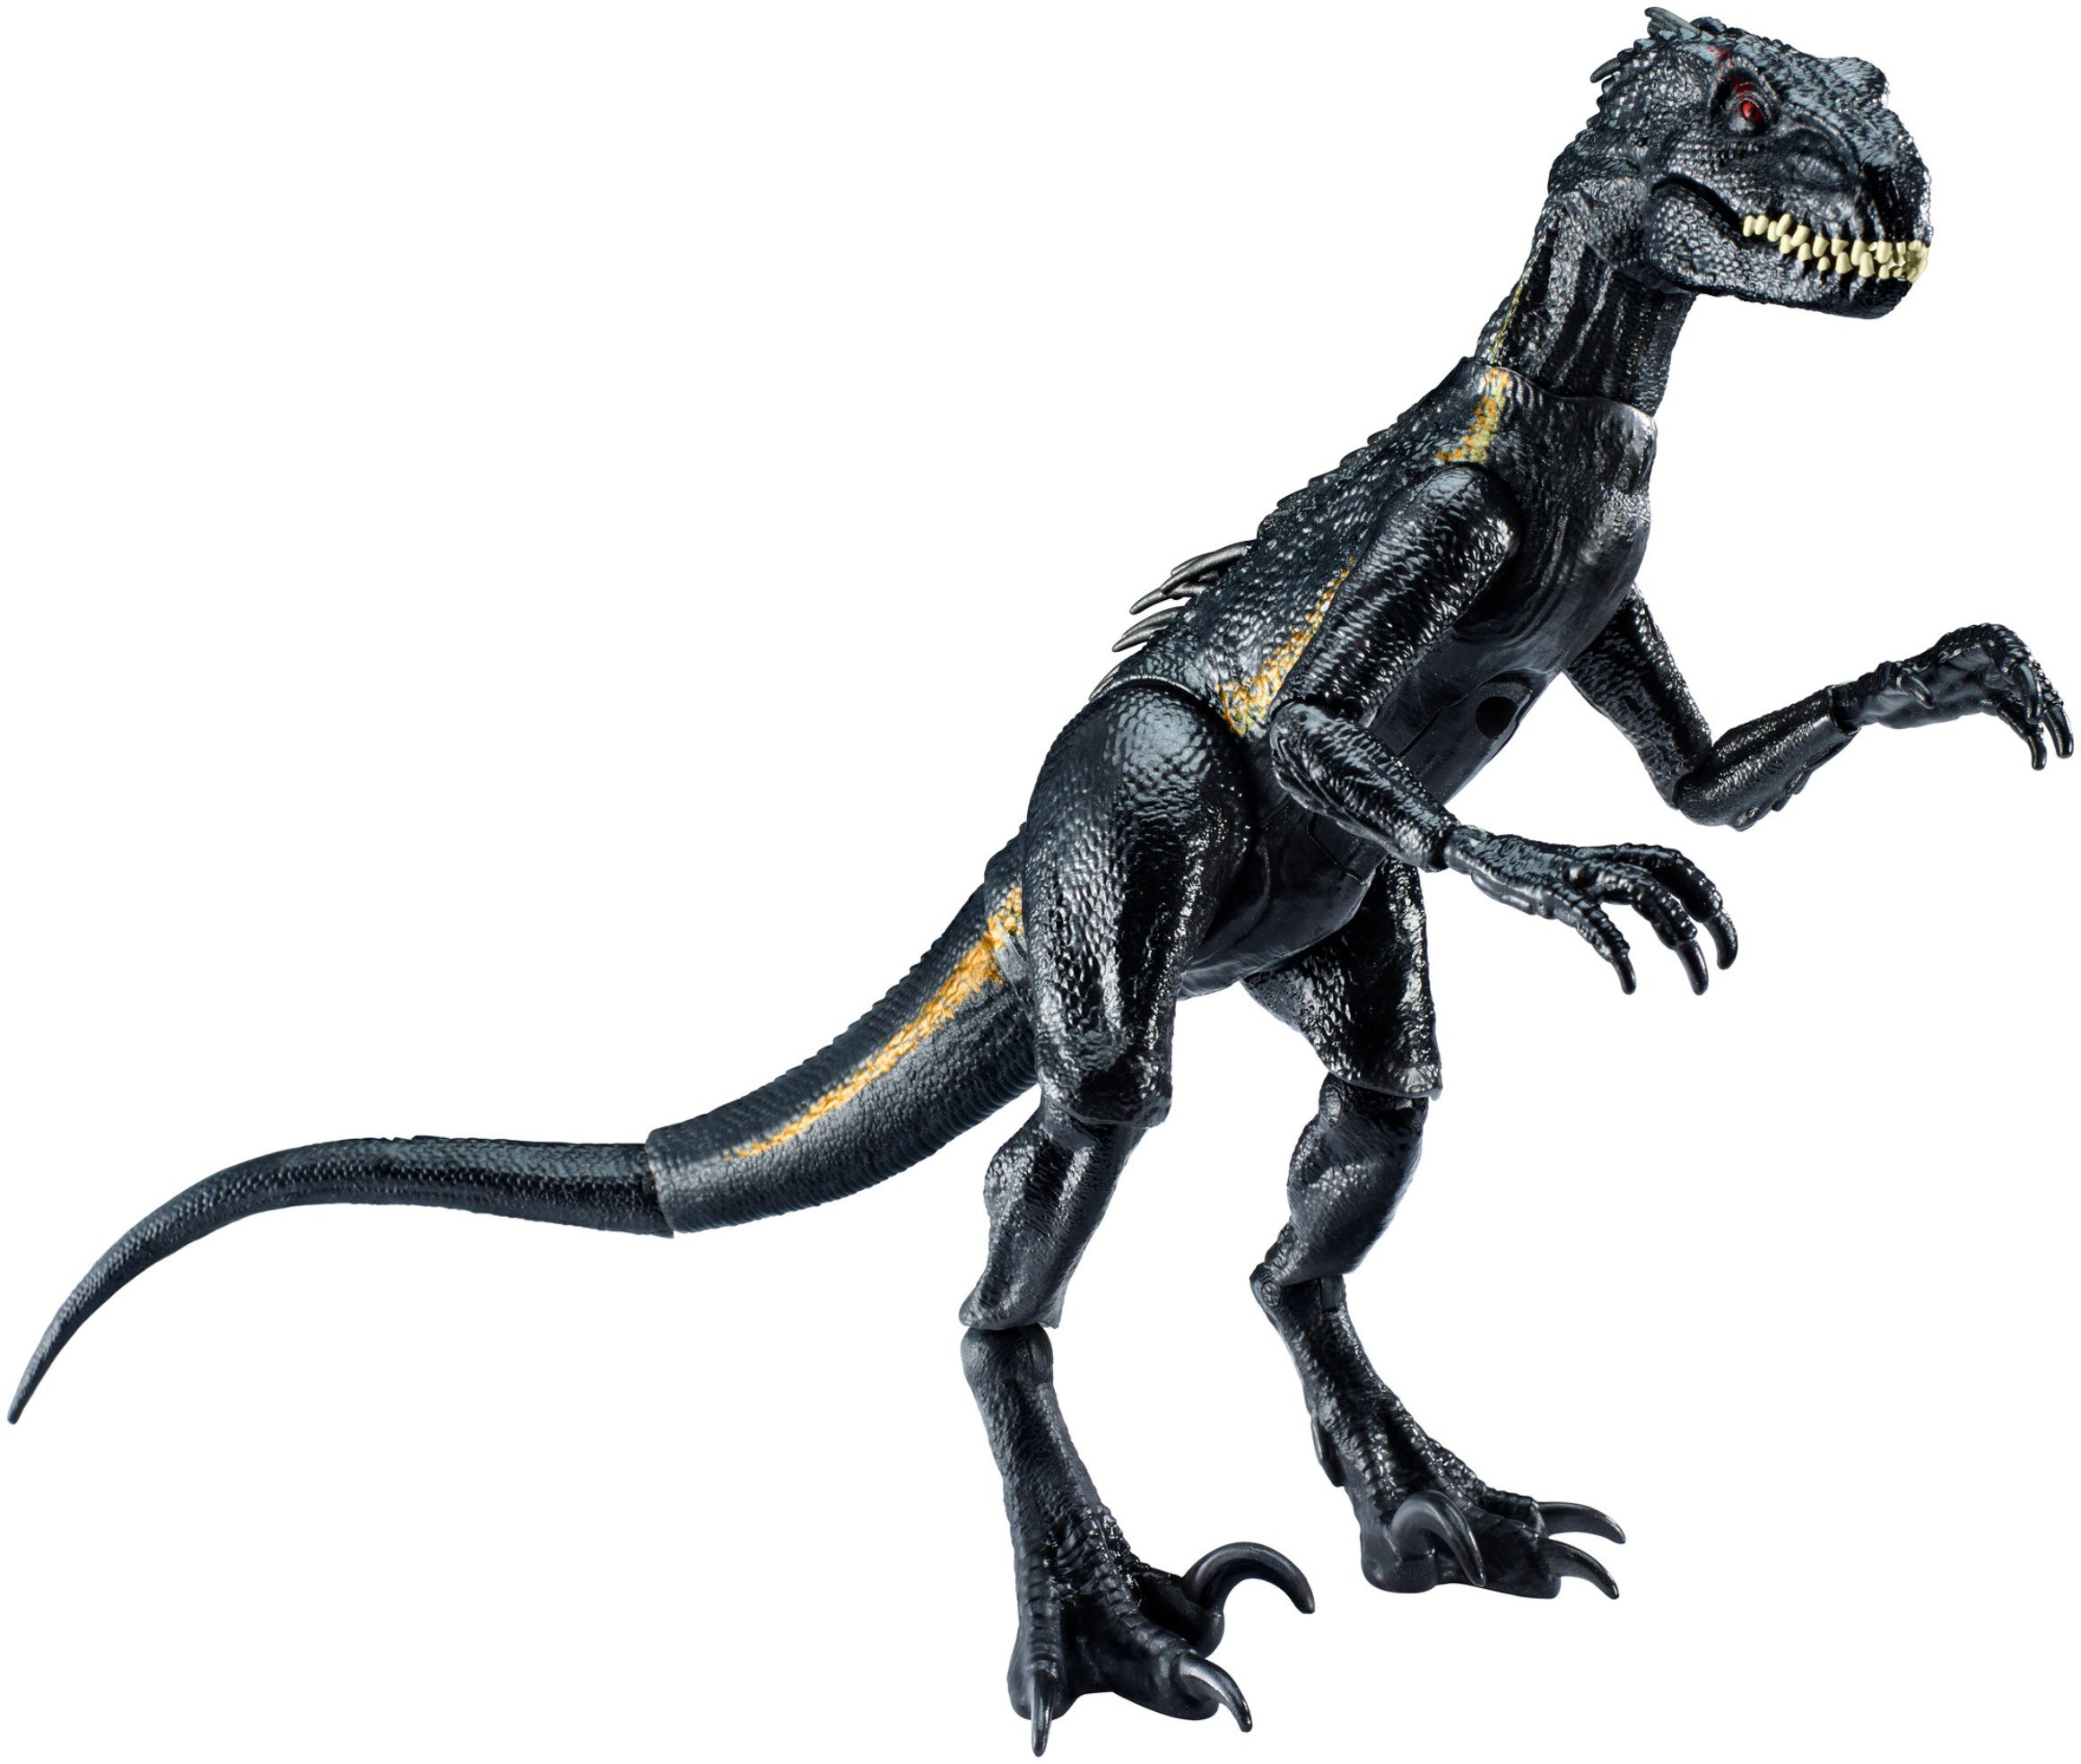 Buy Jurassic World Indoraptor Now!